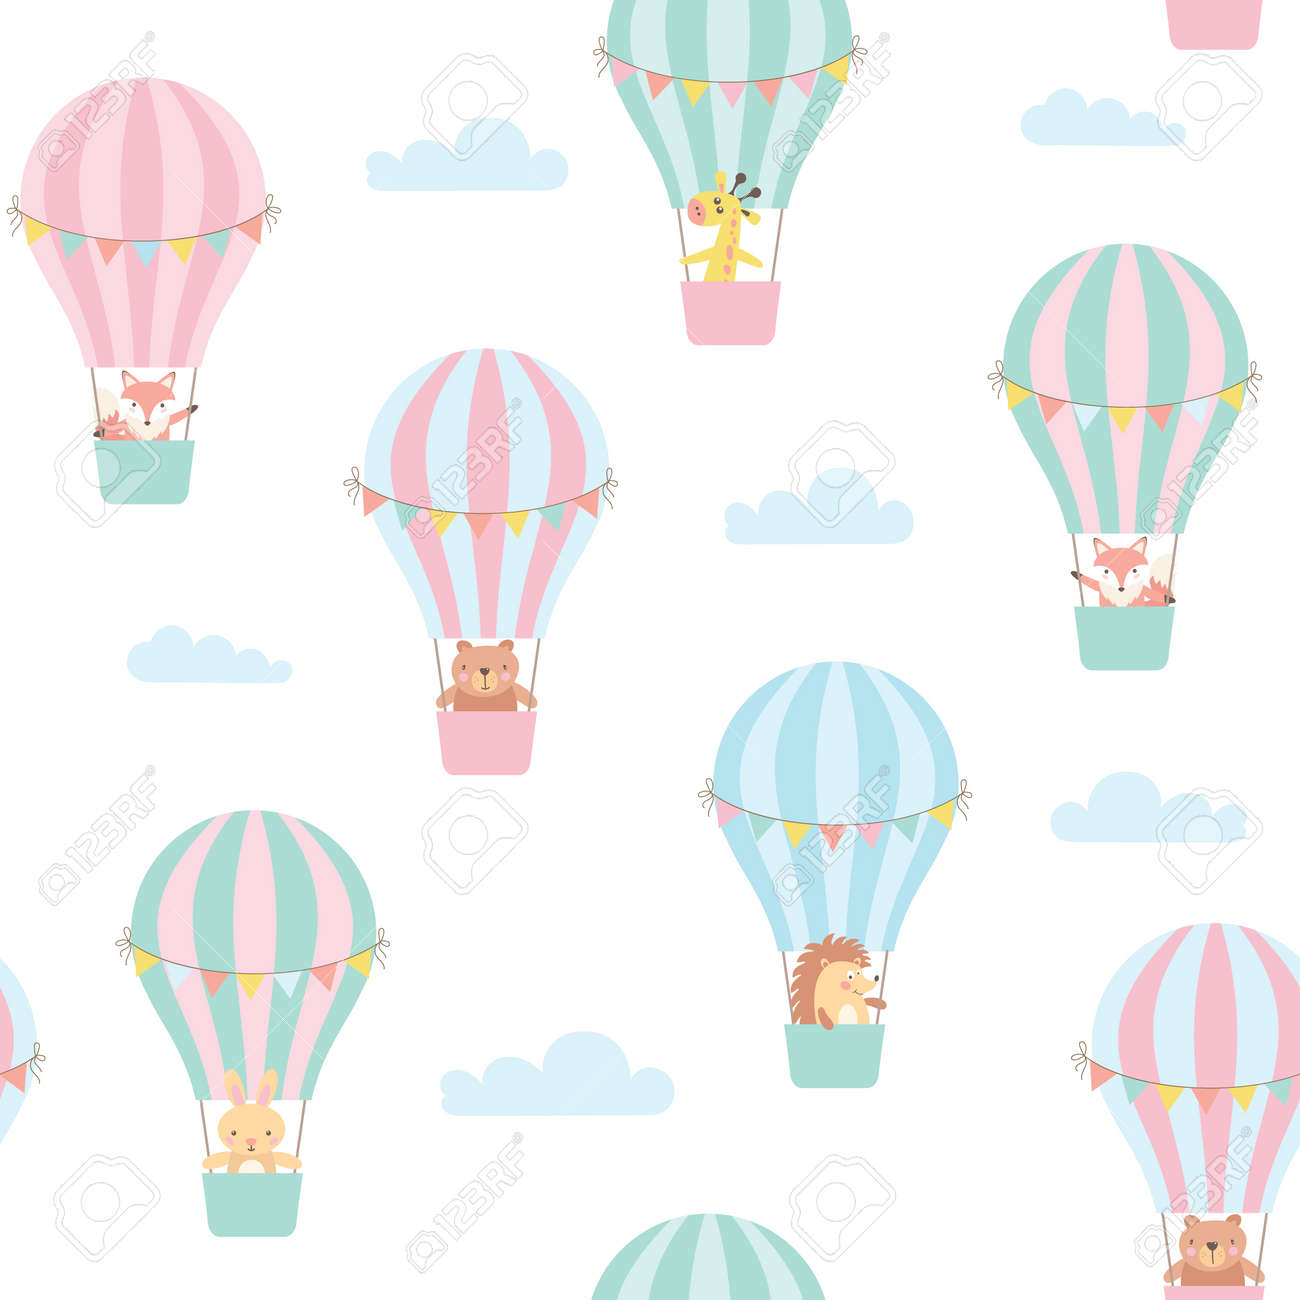 Seamless pattern with cute animals in a hot air balloon. Vector illustration - 108131272